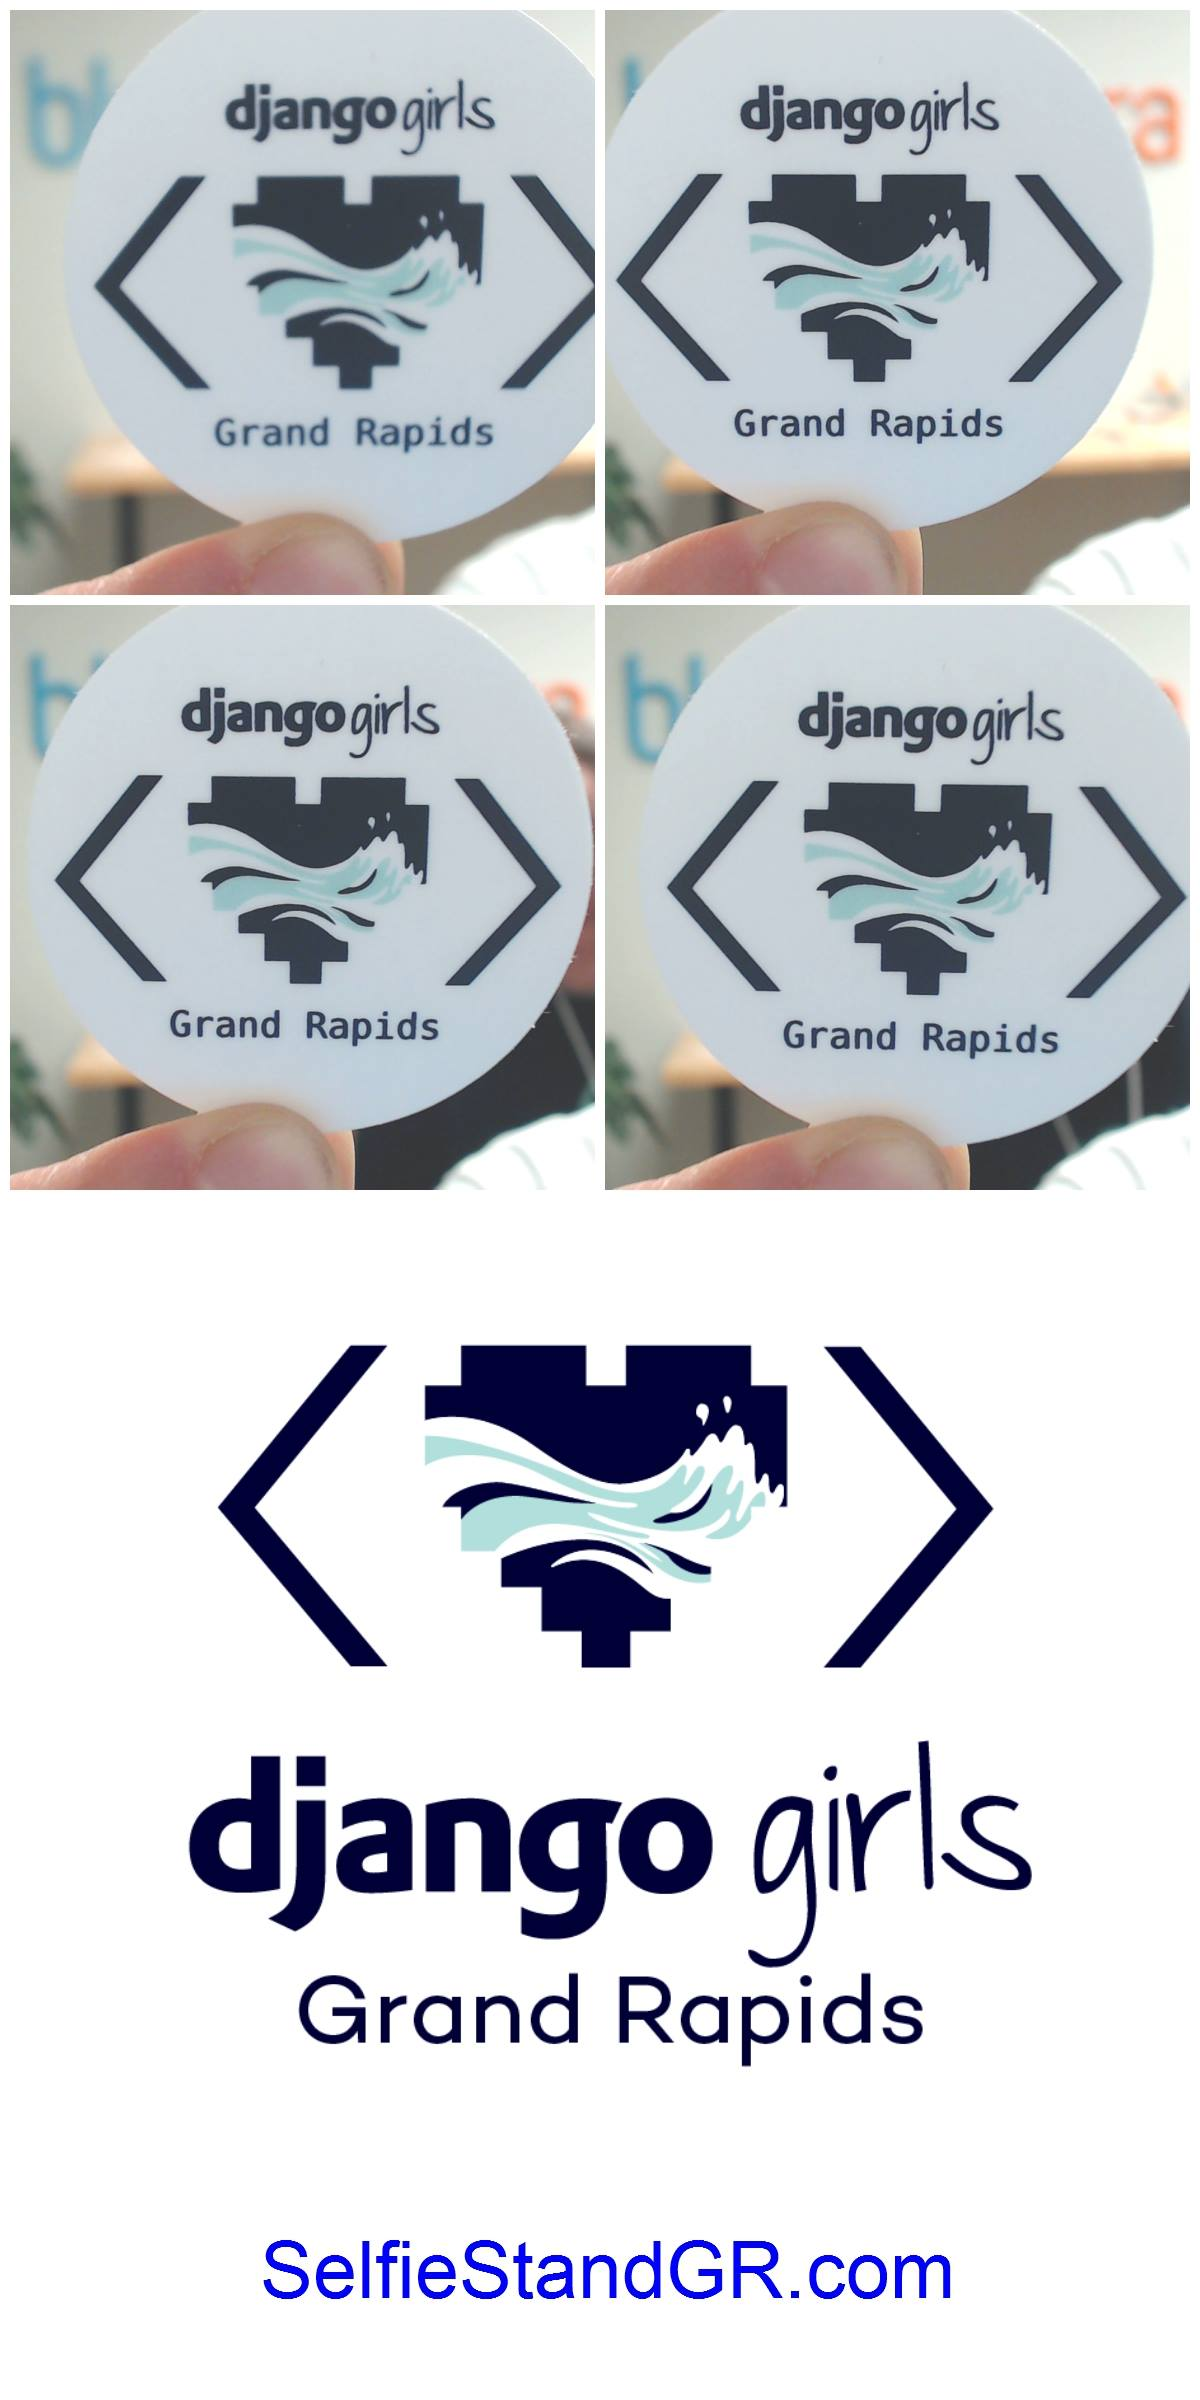 Design of Django Girls logo